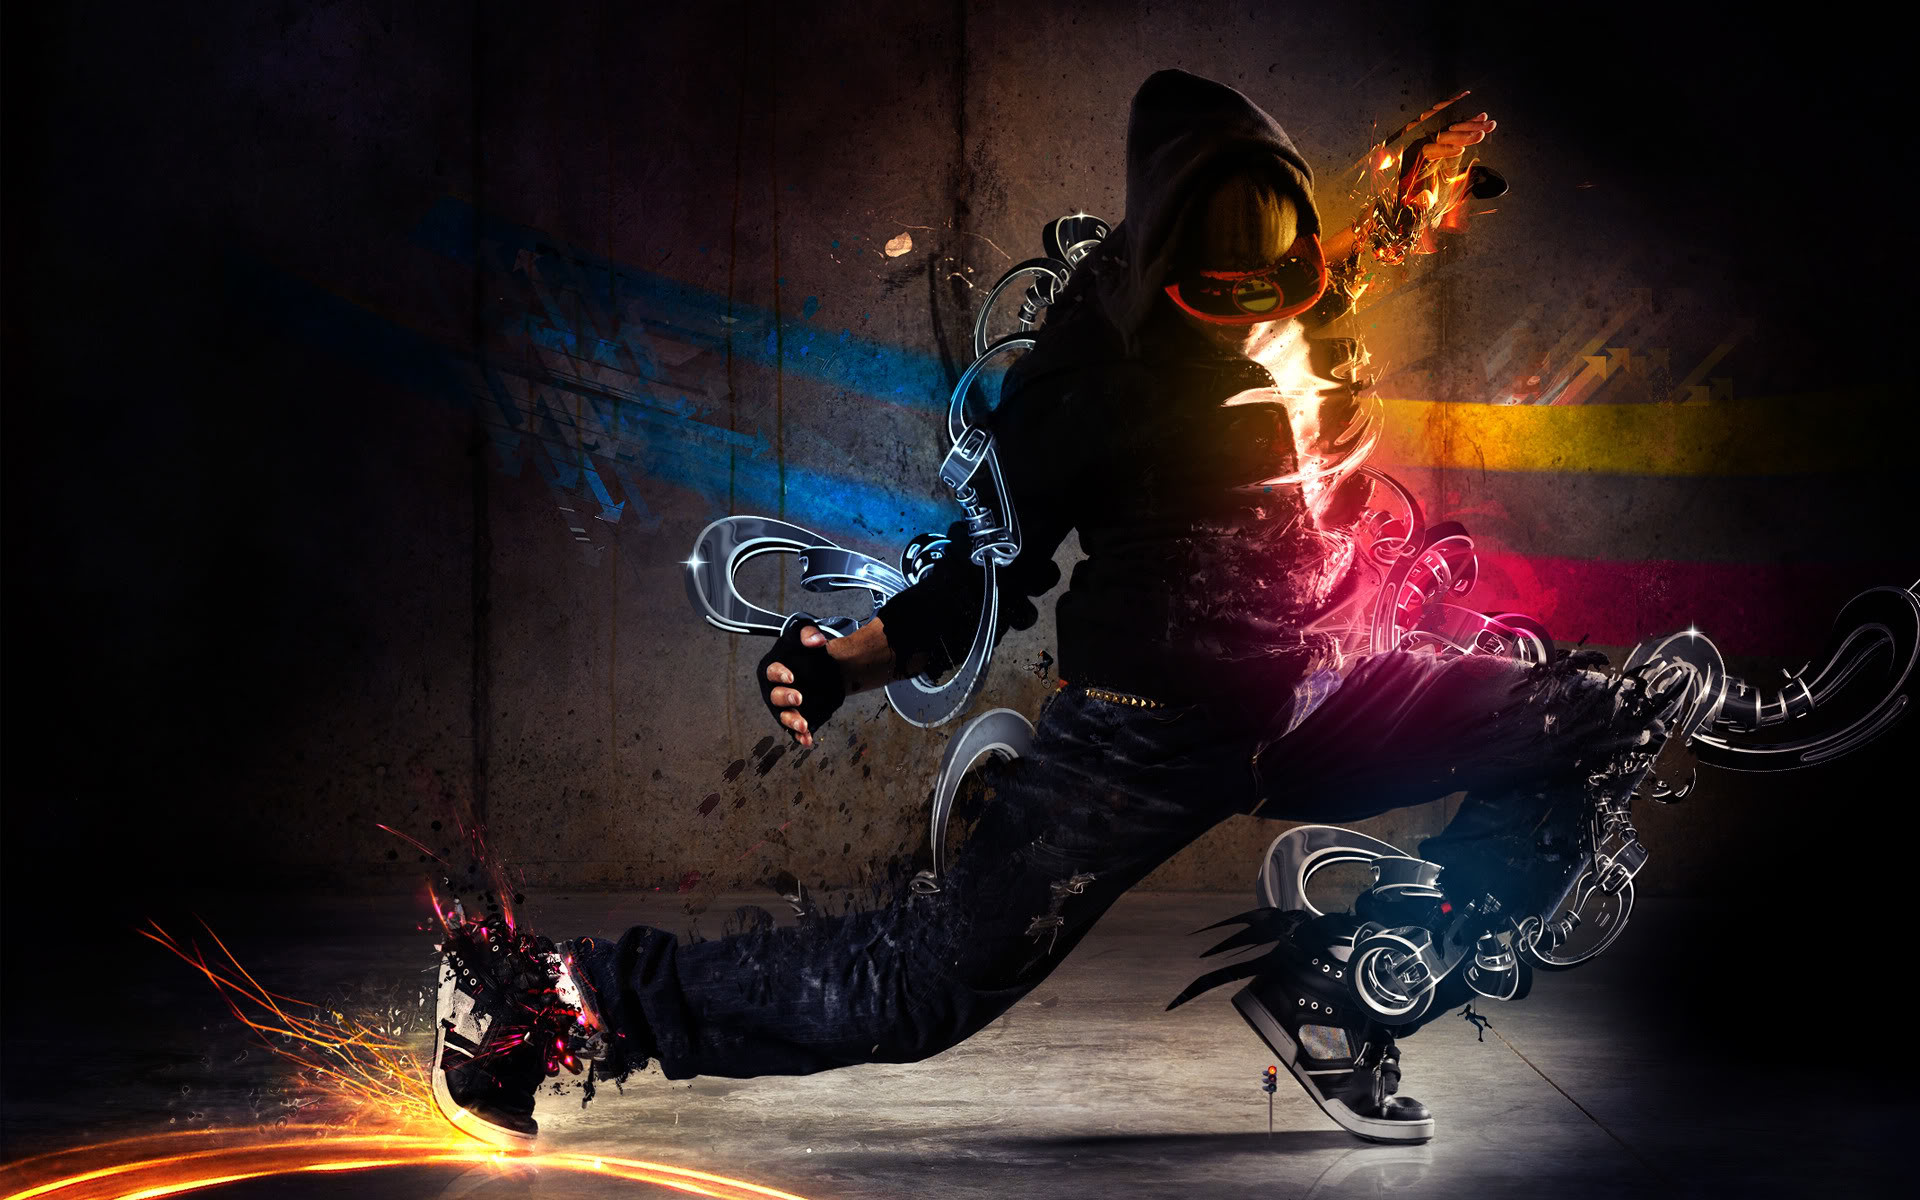 Download Cool HD Wallpapers For Boys Break Dance pictures in high .